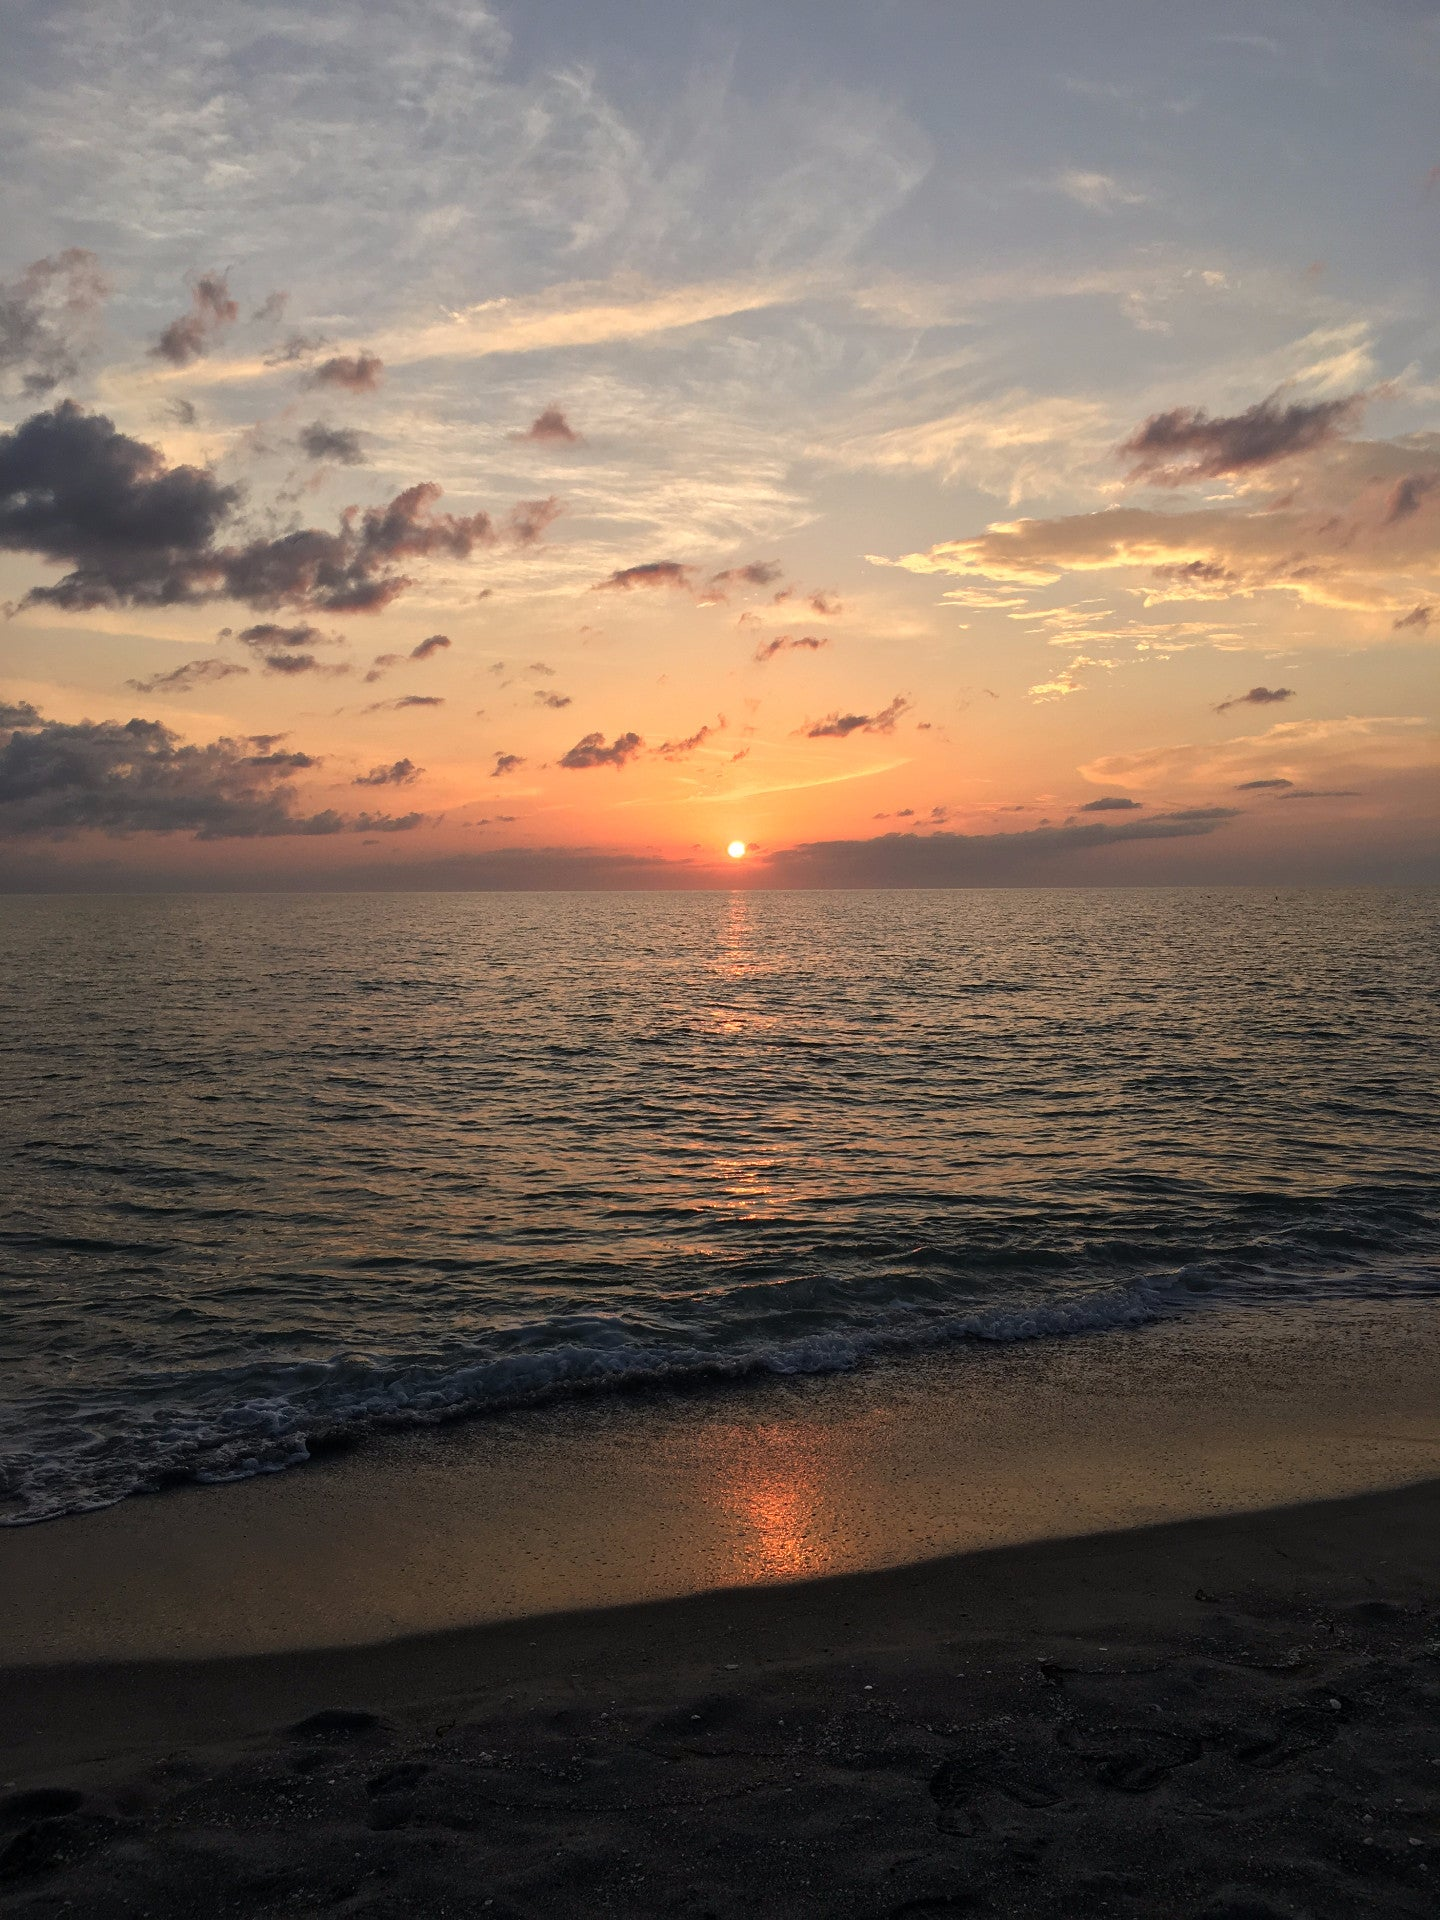 Covet and Lou—The Rambler: Sanibel Island—Sunset